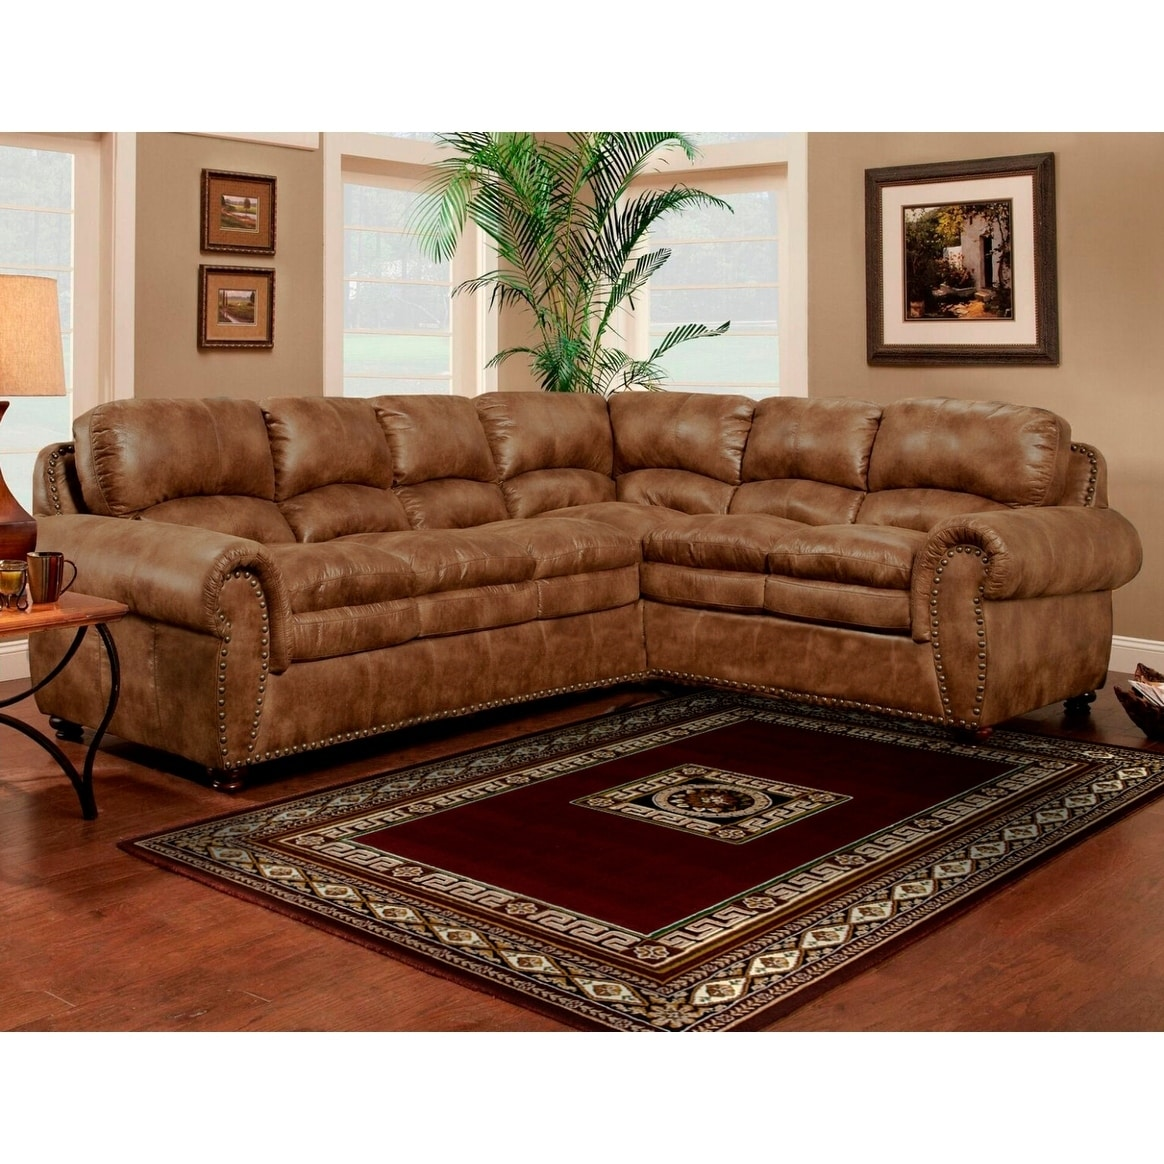 Ordinaire Shop Sofa Trendz Brown Synthetic Leather Air Sectional Sofa   Free Shipping  Today   Overstock.com   11964456